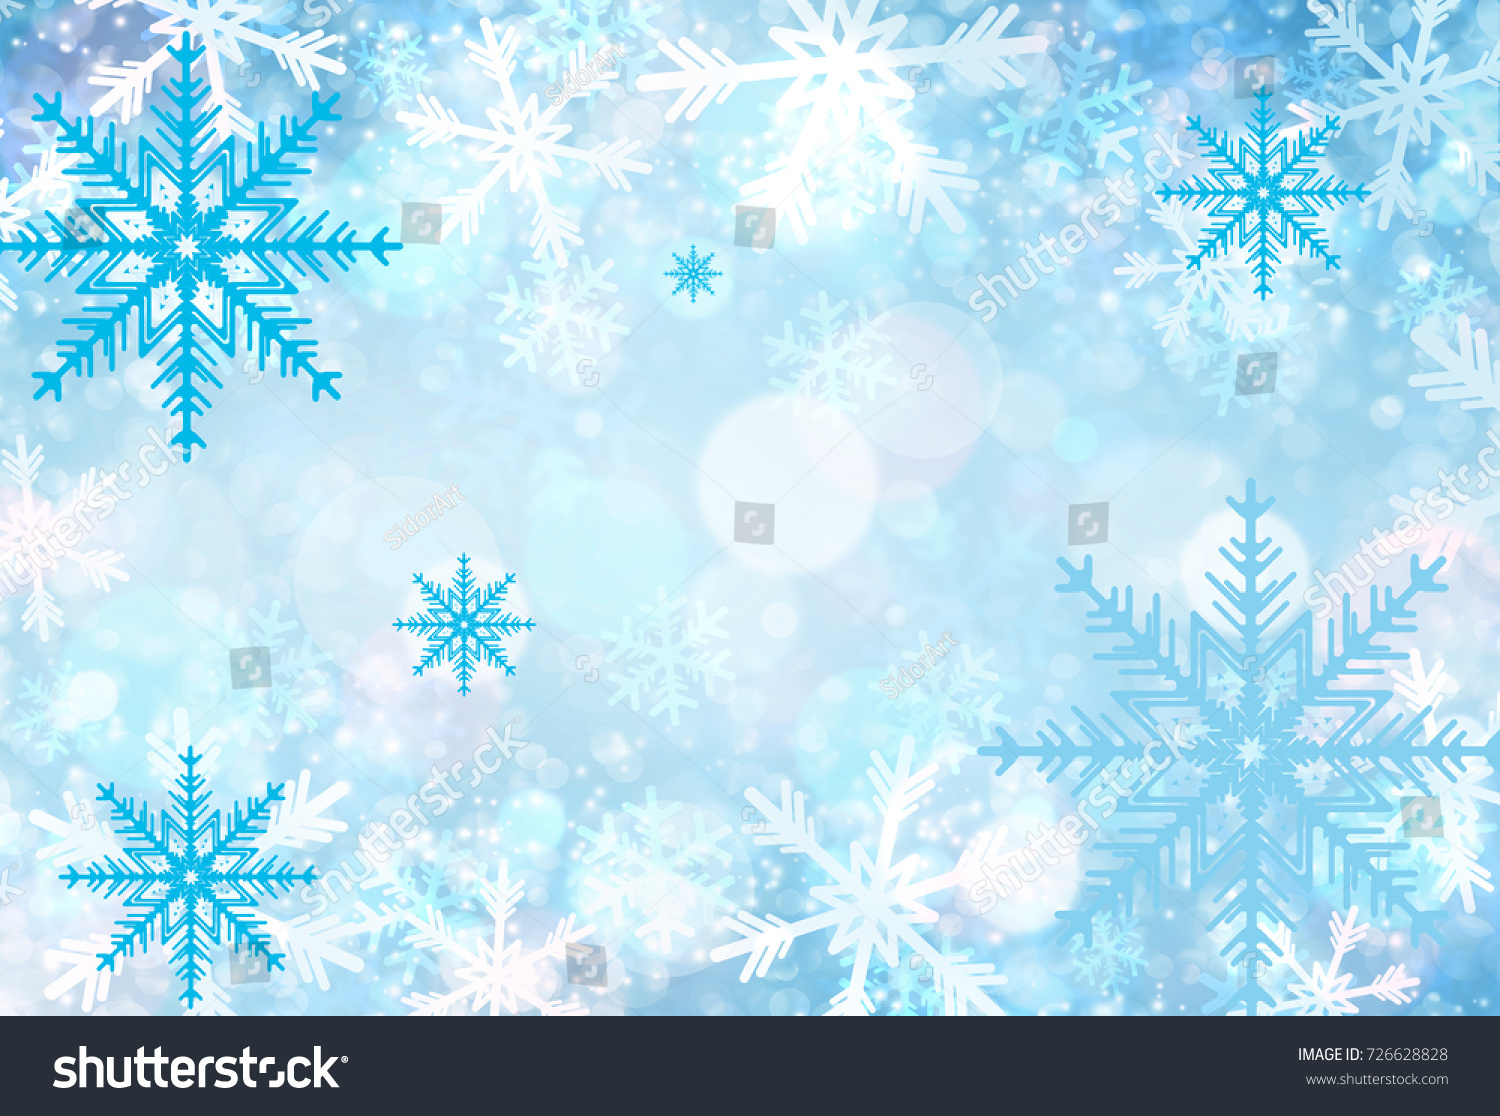 christmas and happy new year card winter background awesome snowflakes texture backdrop